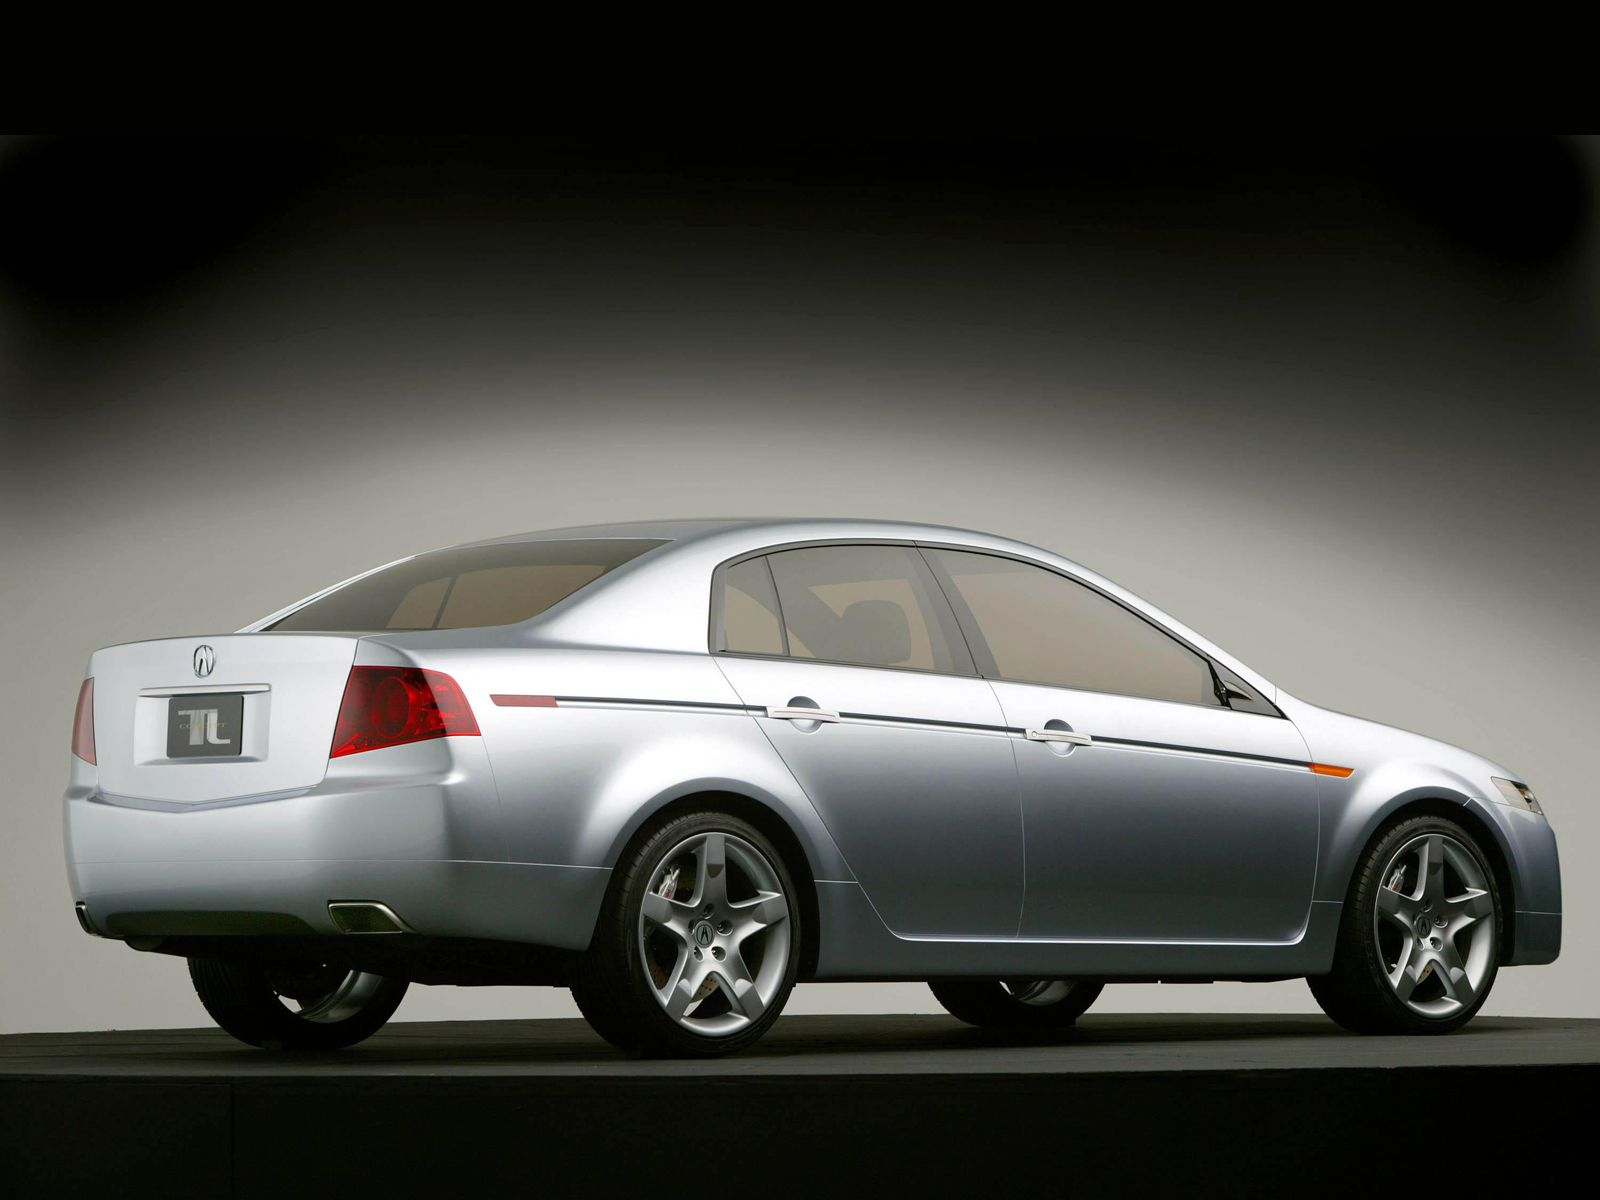 Awesome silver Acura TL Concept Car